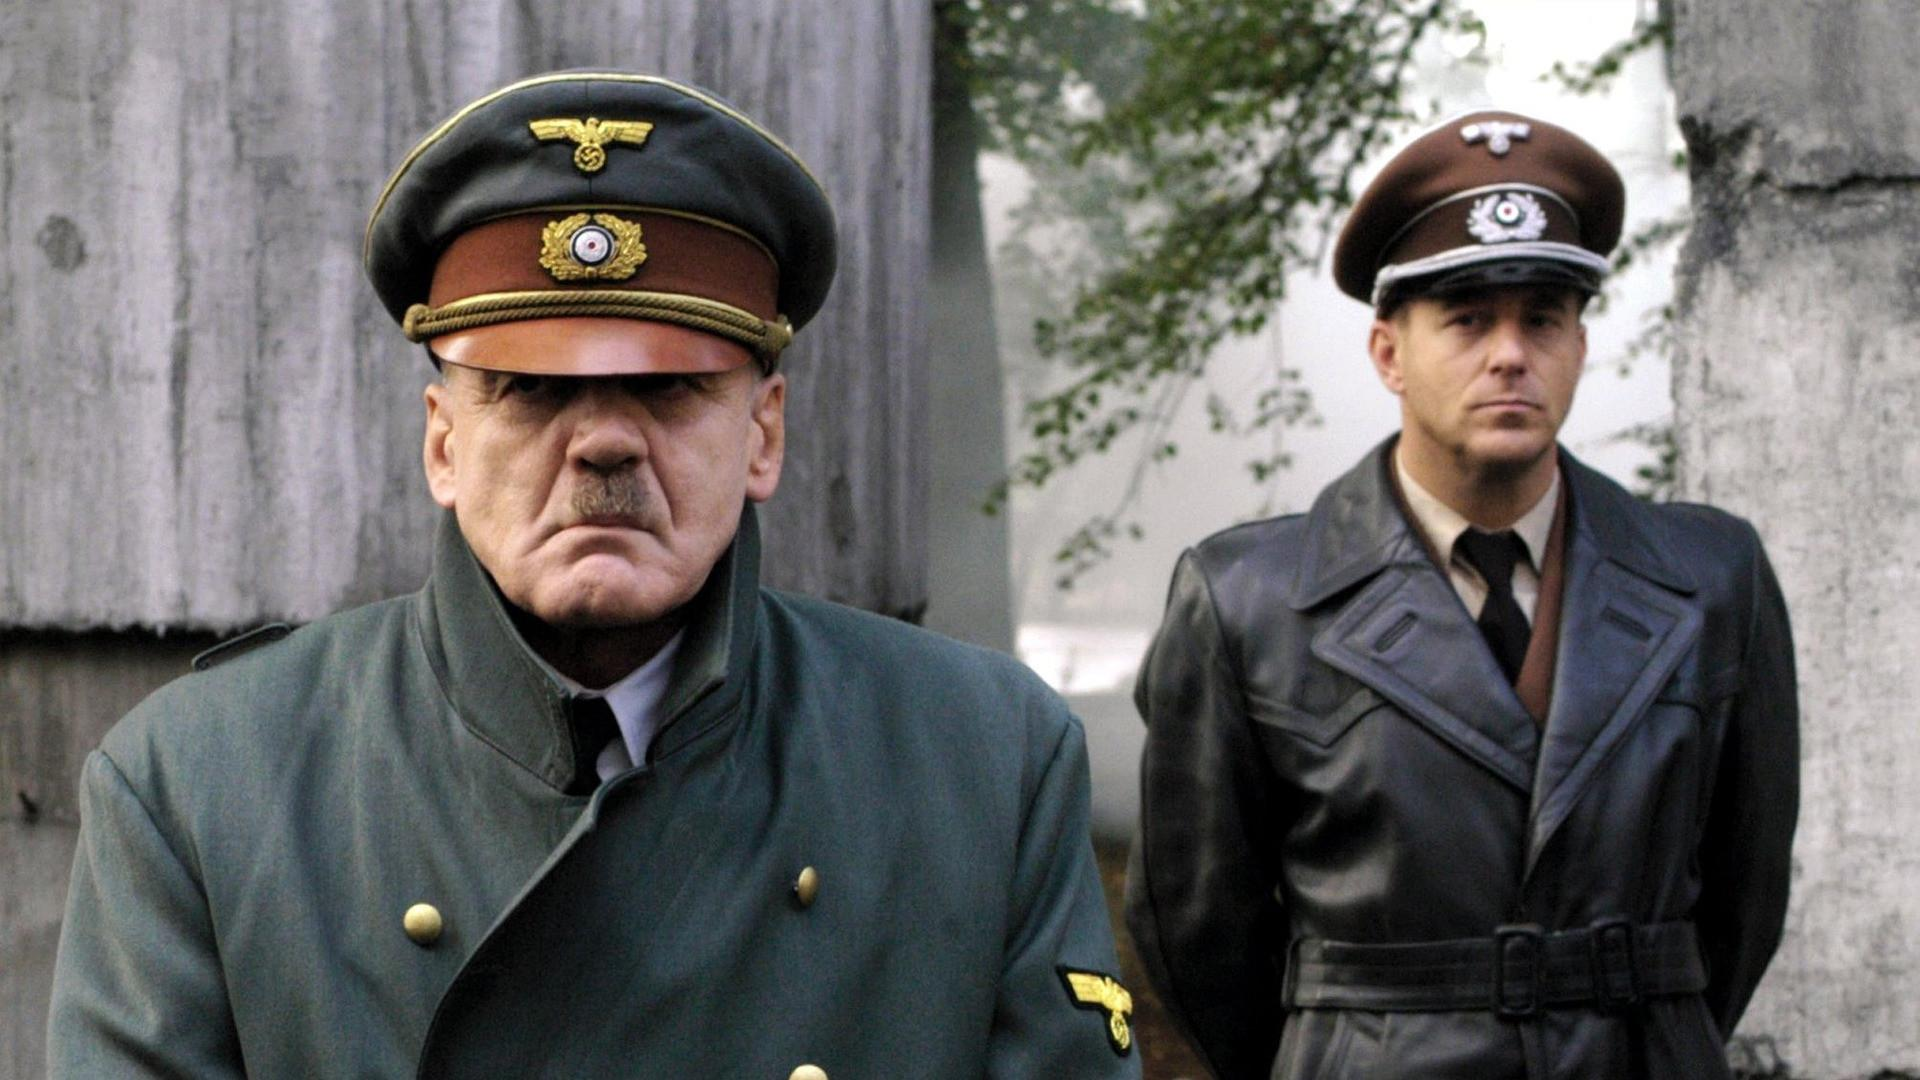 Downfall (Der Untergang) - Rotten Tomatoes